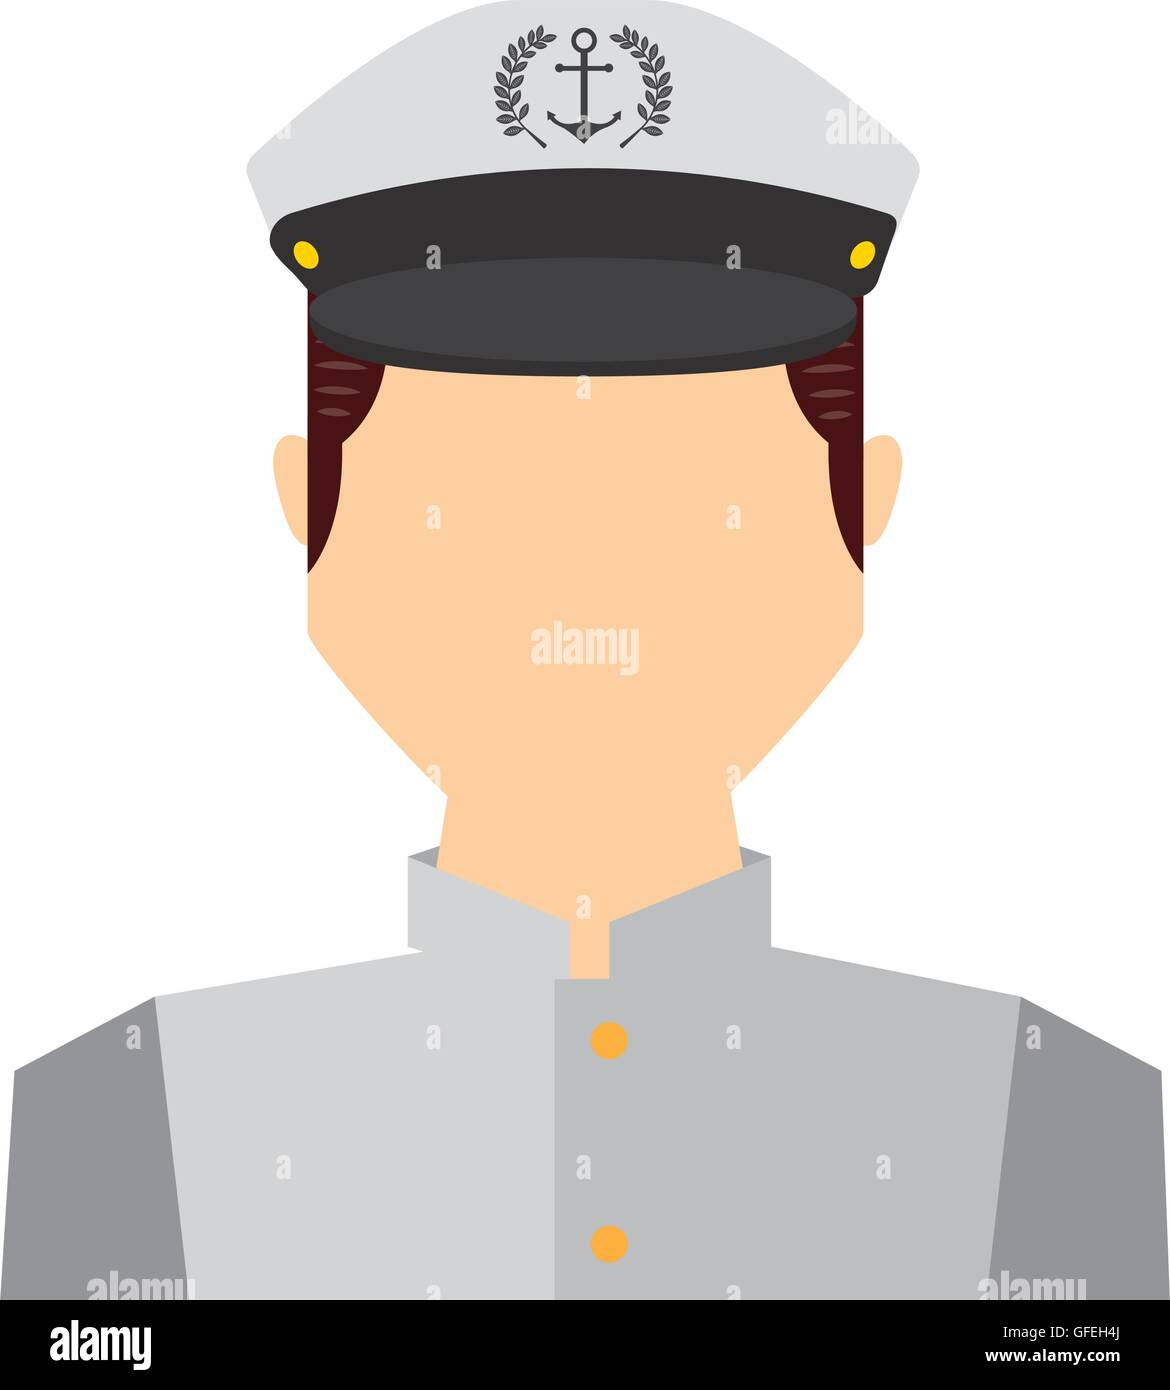 Sailor stock photos illustrations and vector art - Stock Vector Captain Sailor Man Icon